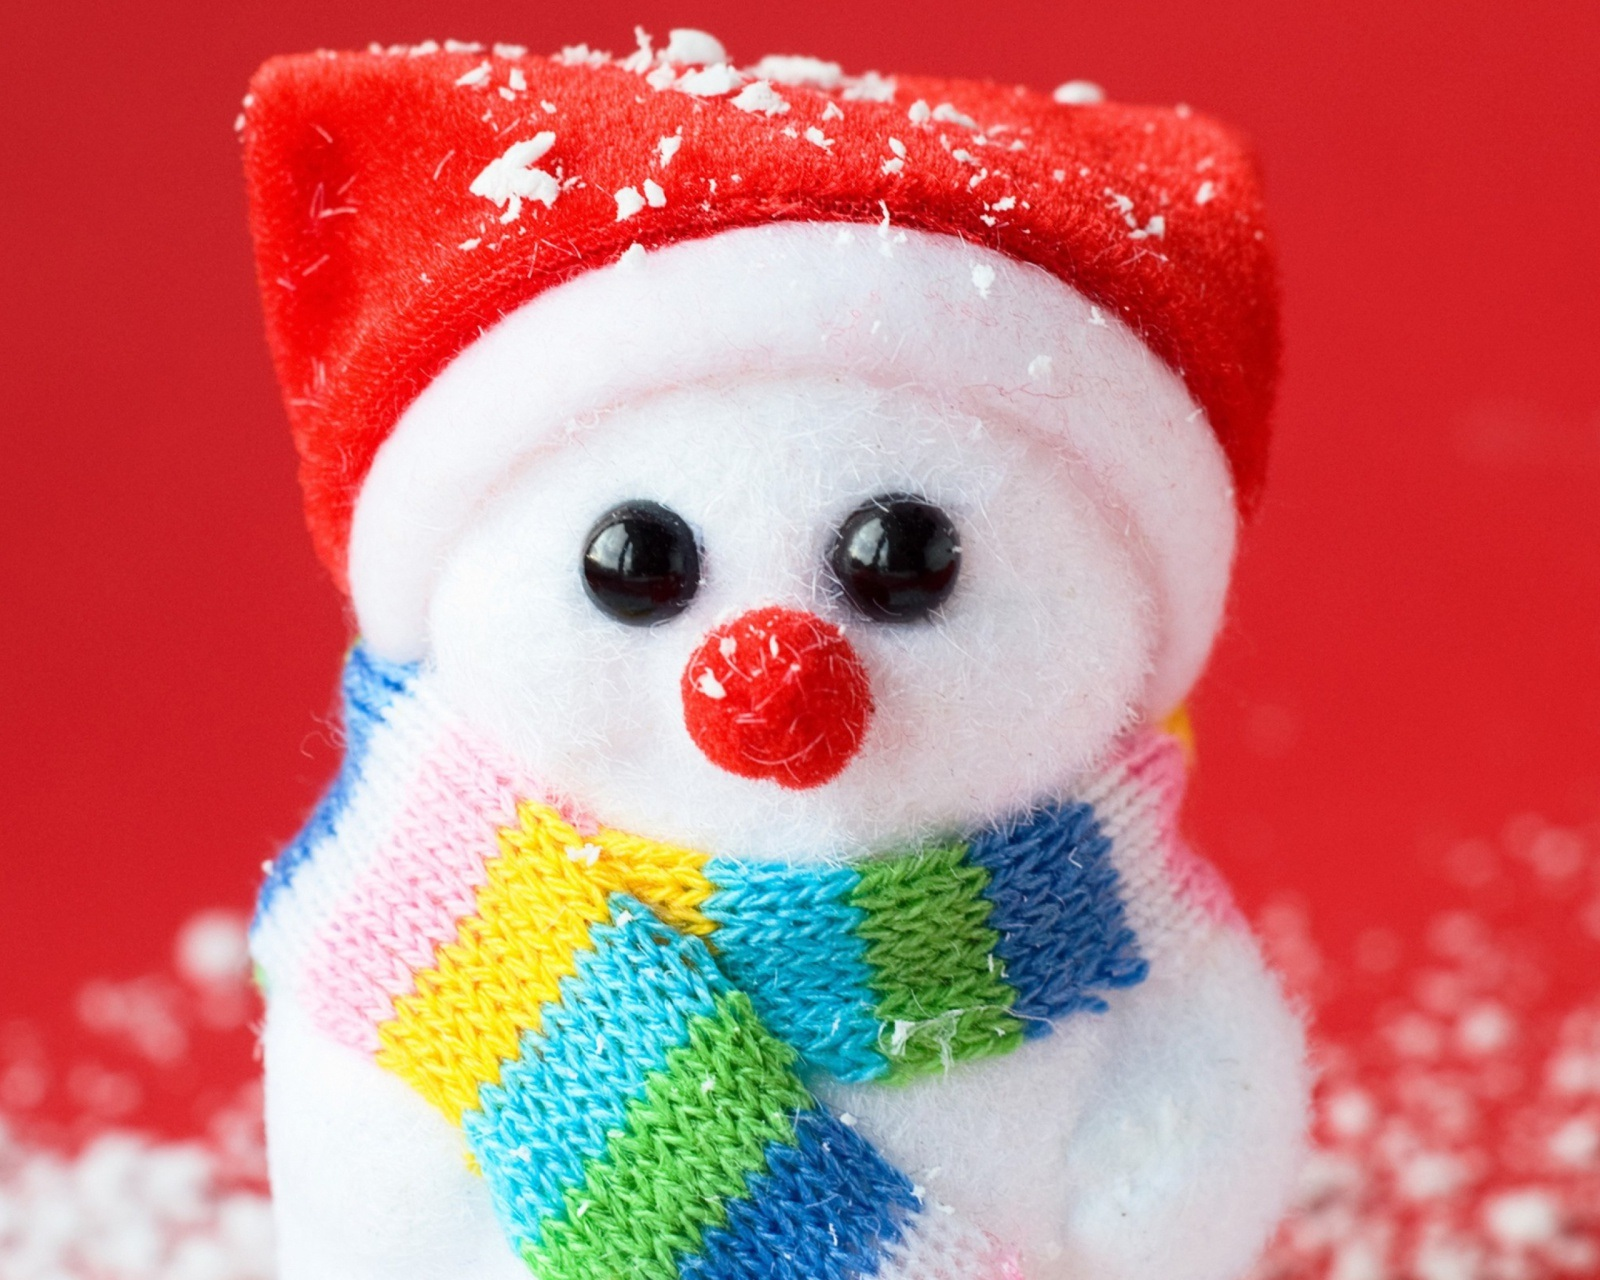 Tags Cute Christmas Snowman 1600x1280 wallpaper1600X1280 wallpaper 1600x1280